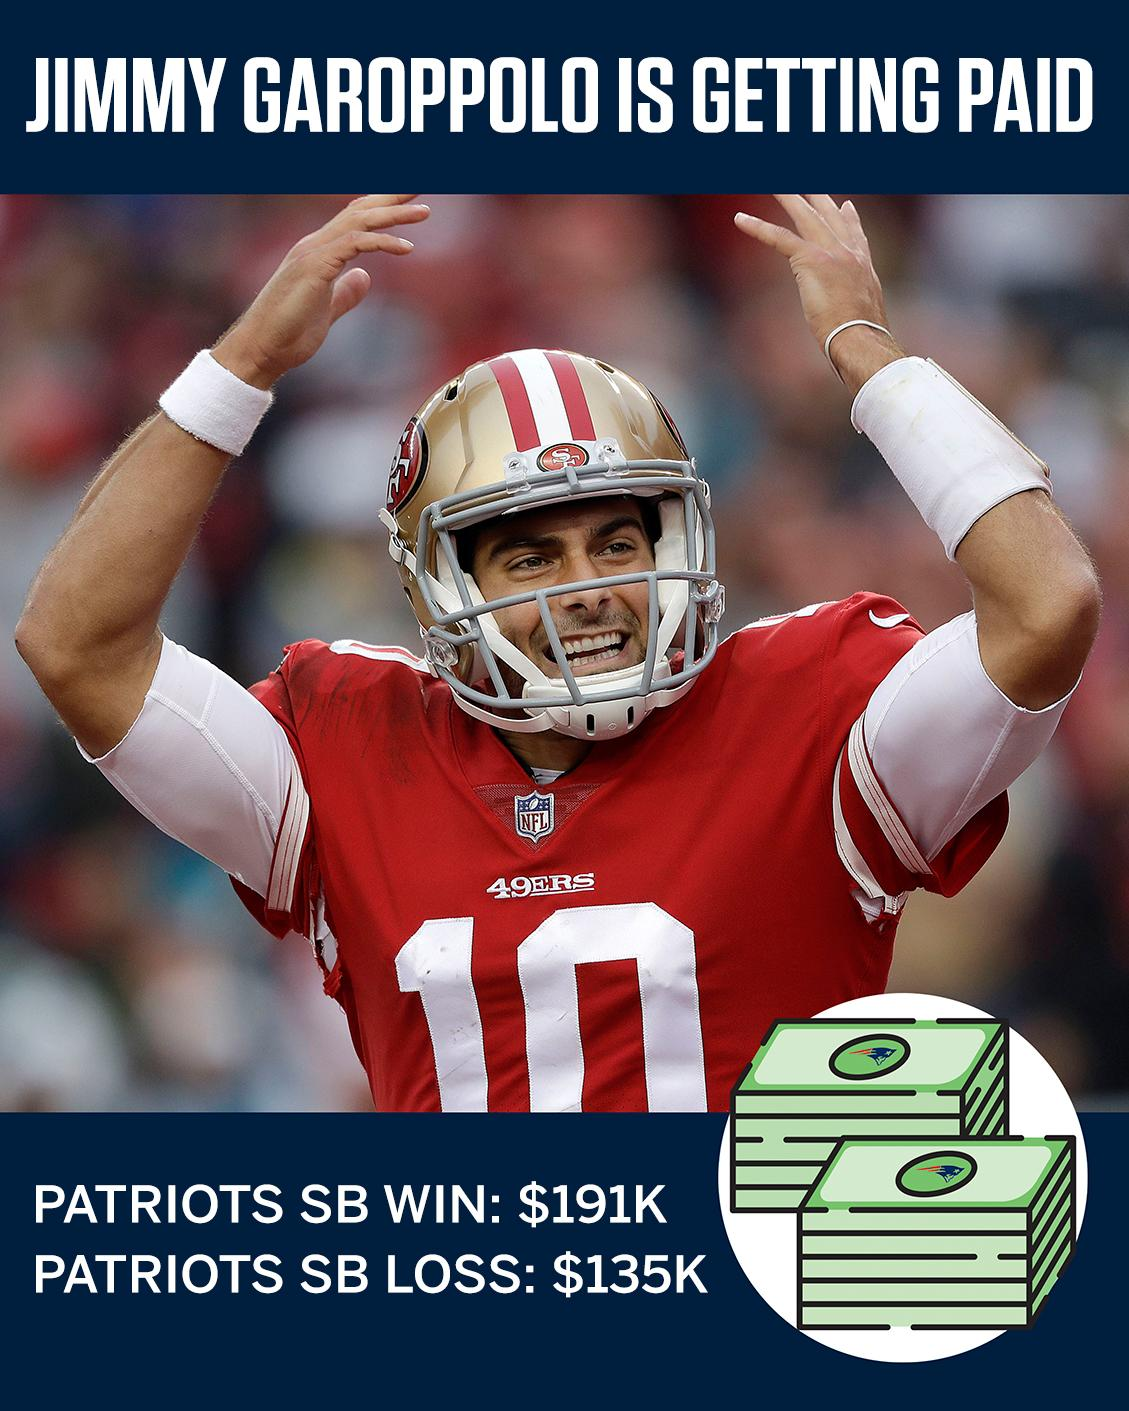 Jimmy Garoppolo's total takeaway in bonuses from the Patriots' playoff run will be at least $135,000. https://t.co/bTyE8Z1ghA